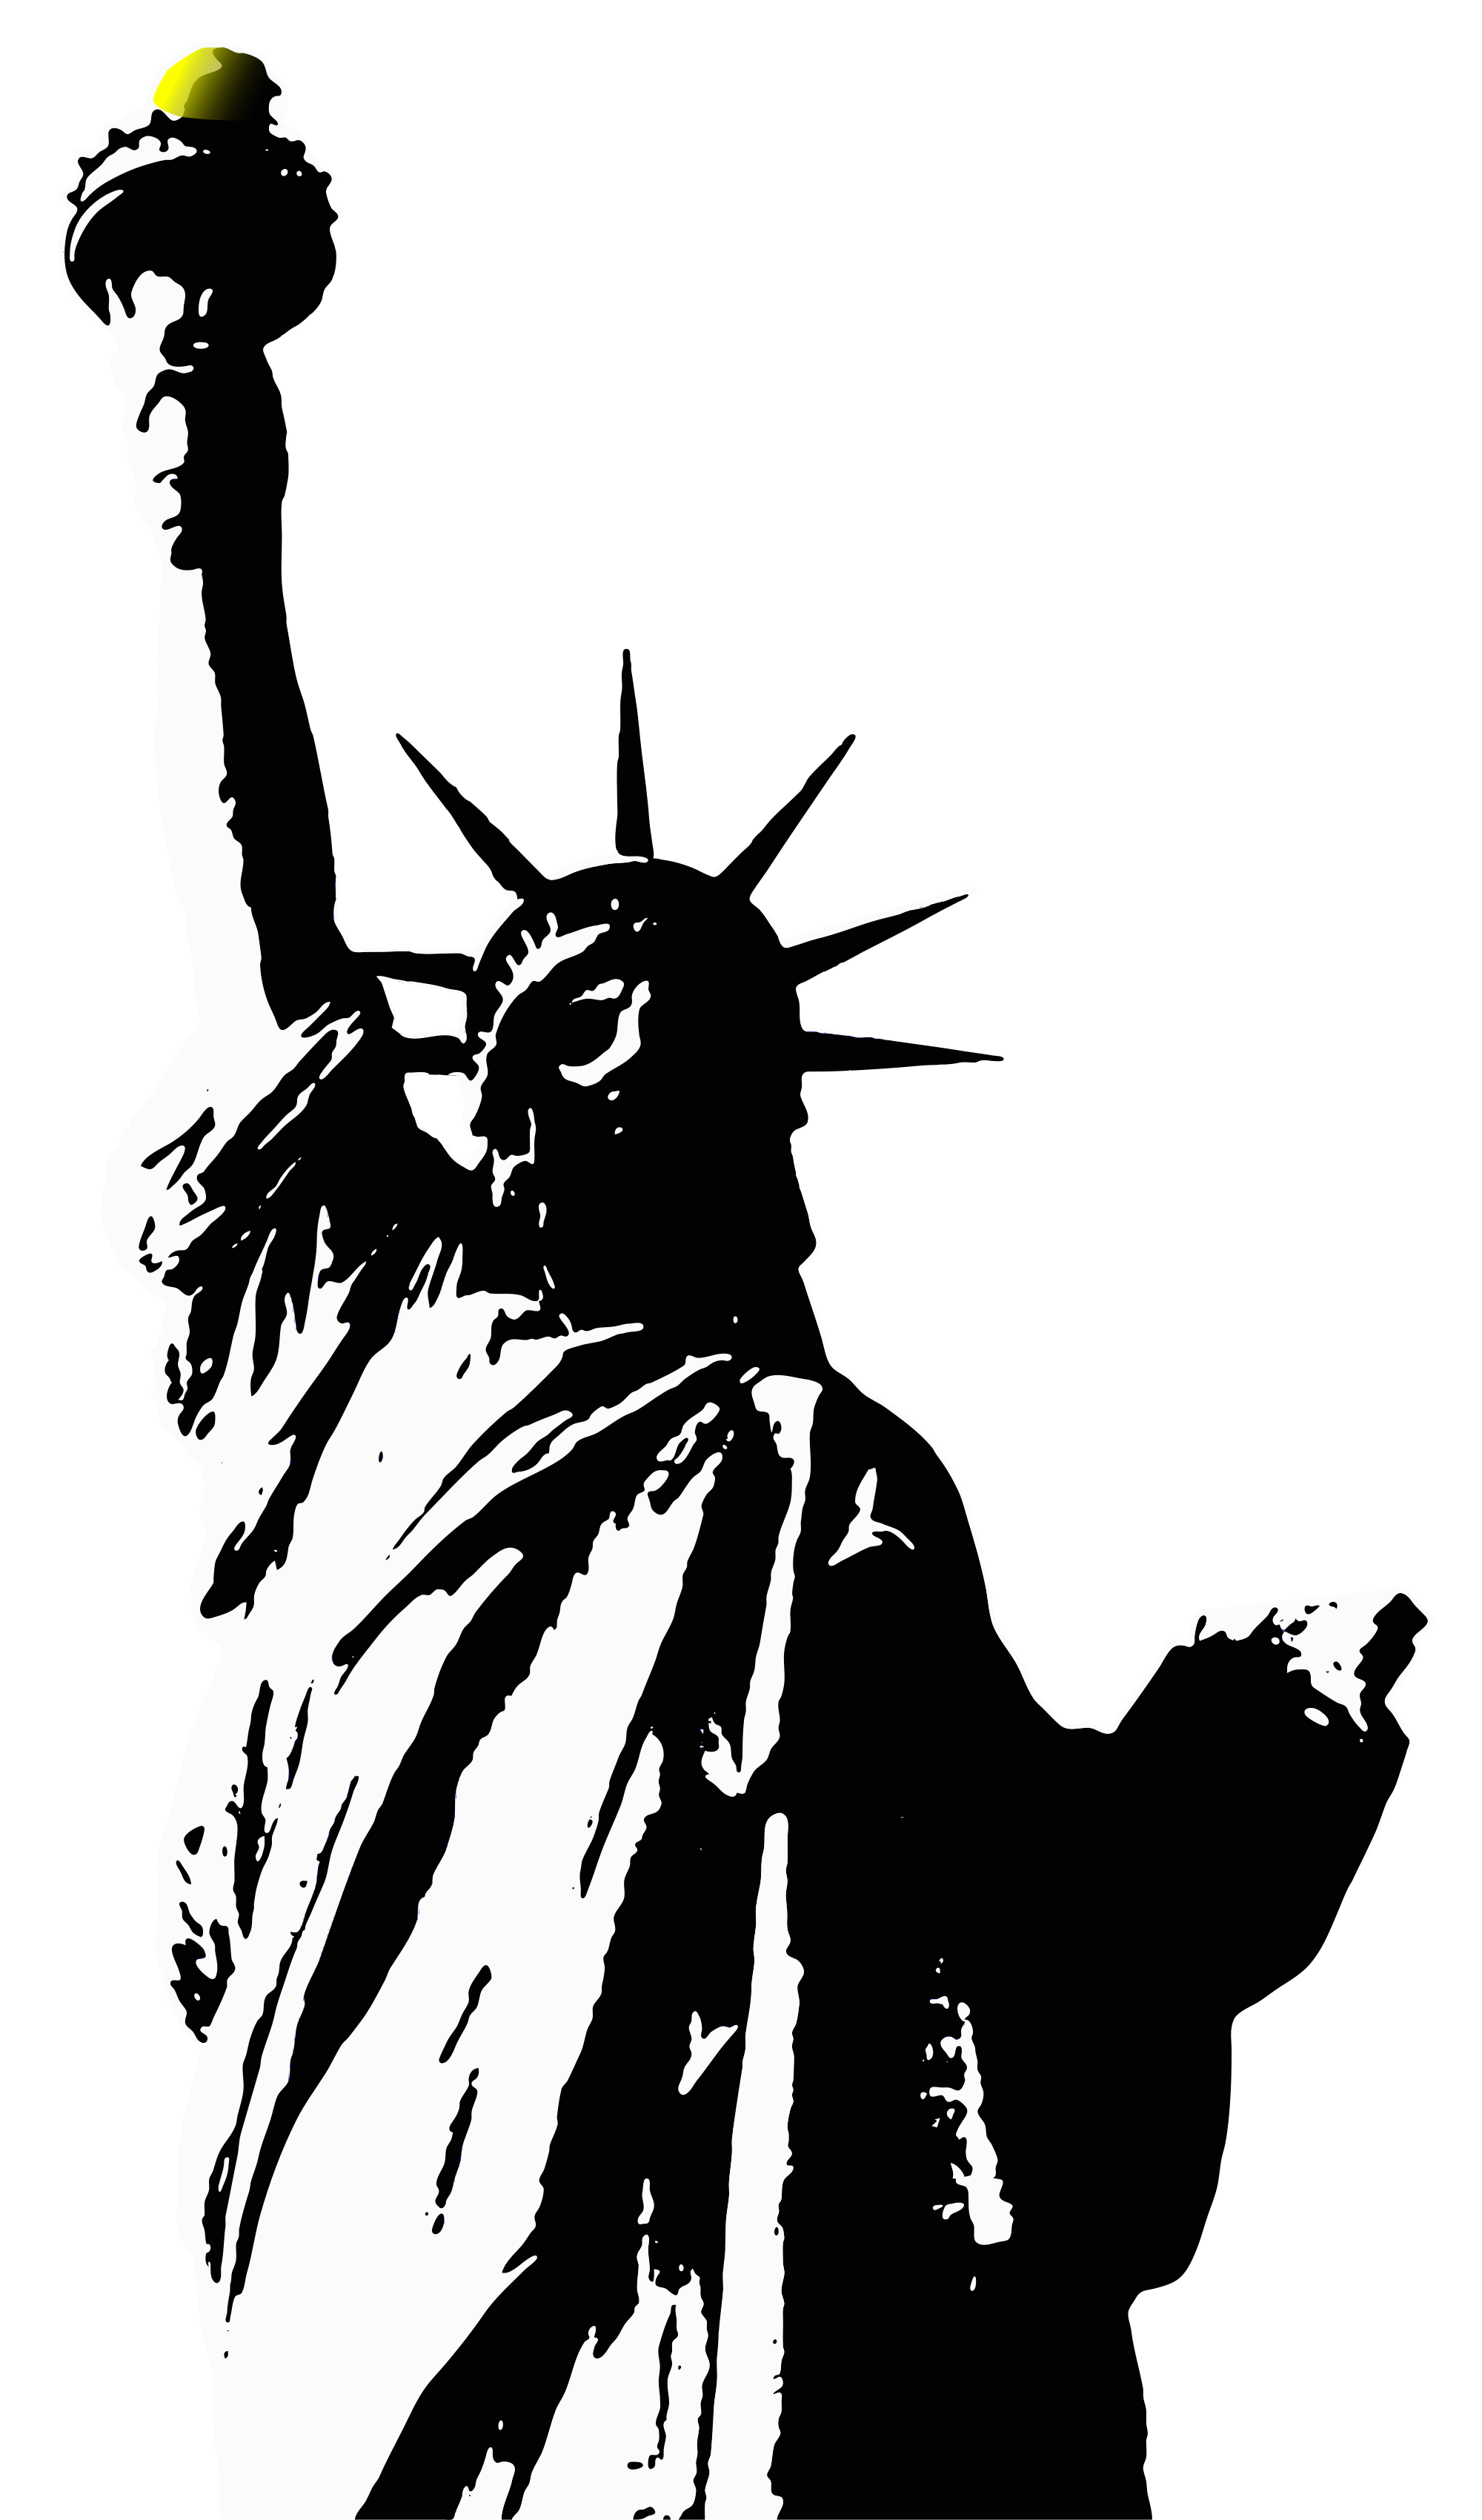 Black and white statue of liberty clipart free download Pin by Hopeless on Clipart | Statue of liberty, Statue, Liberty island free download